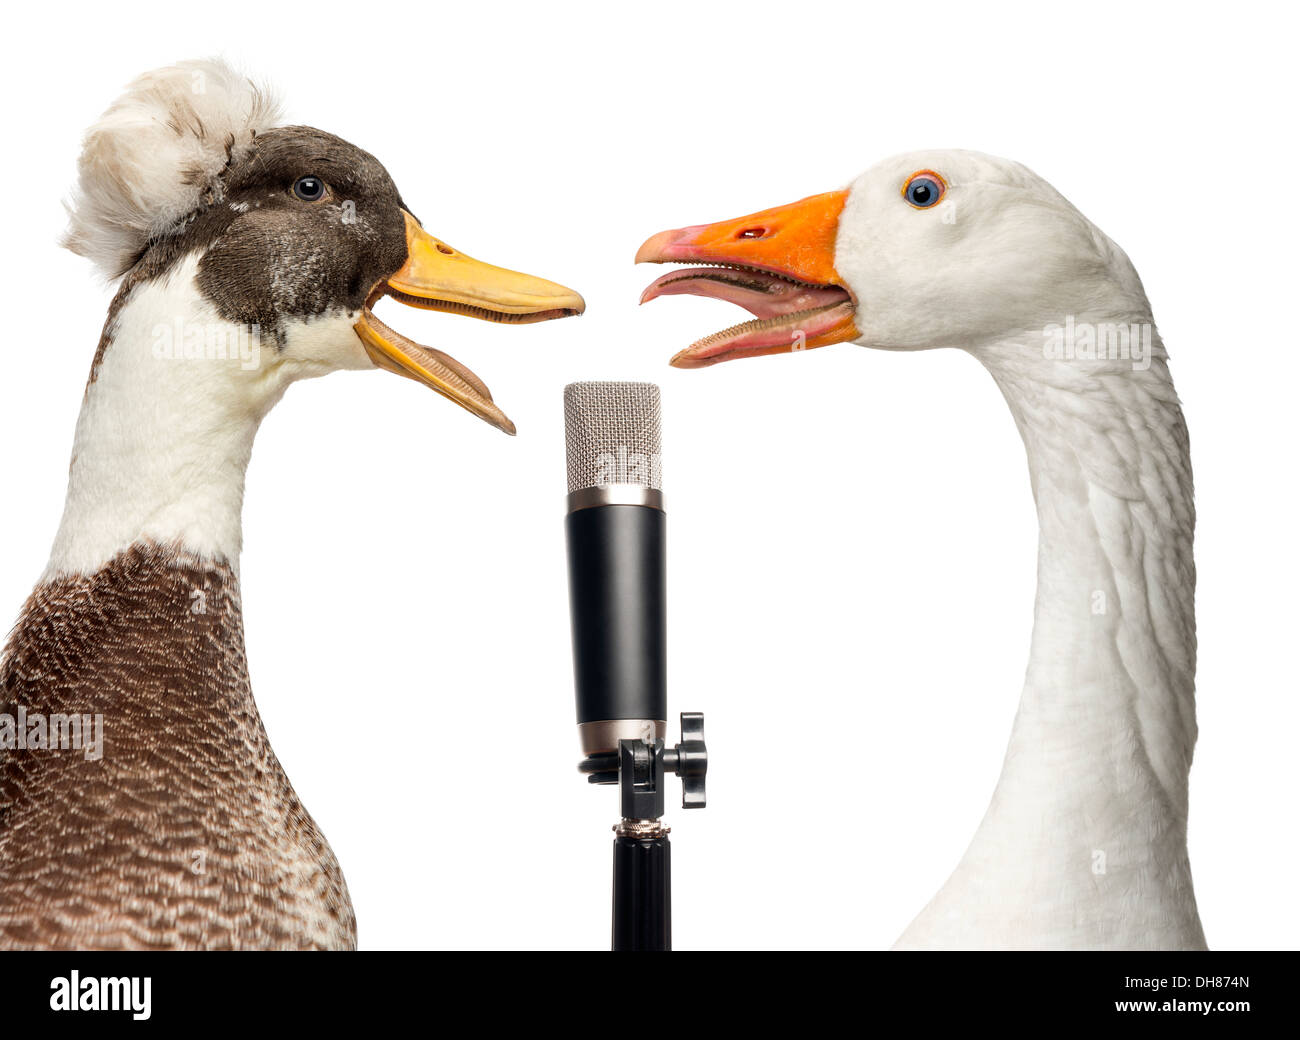 Close-up of Male Crested Duck, lophonetta specularioides, and Domestic goose, Anser anser domesticus, singing into microphone - Stock Image